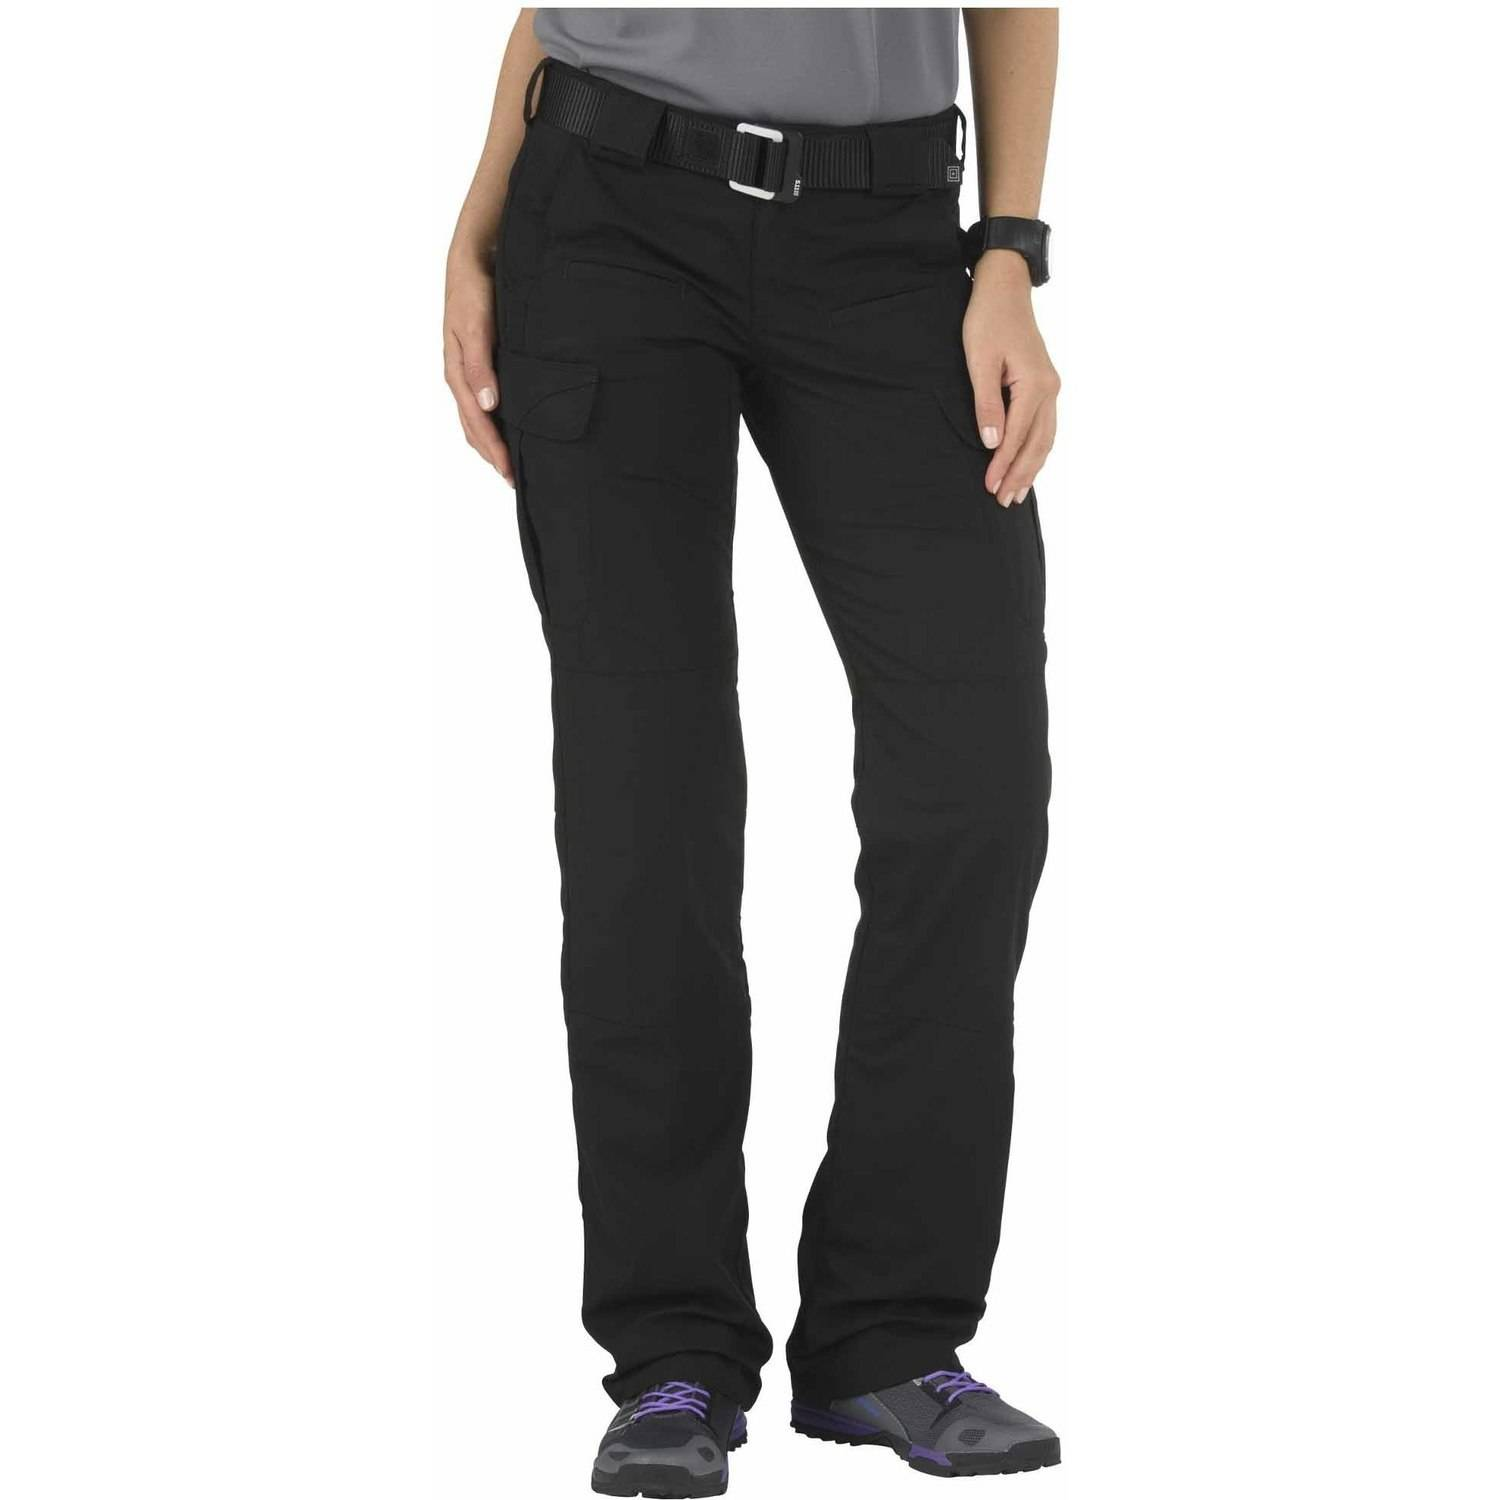 5.11 Tactical Women's Stryke Pant with Flex-Tac Rip Stop, Black by 5.11 Tactical